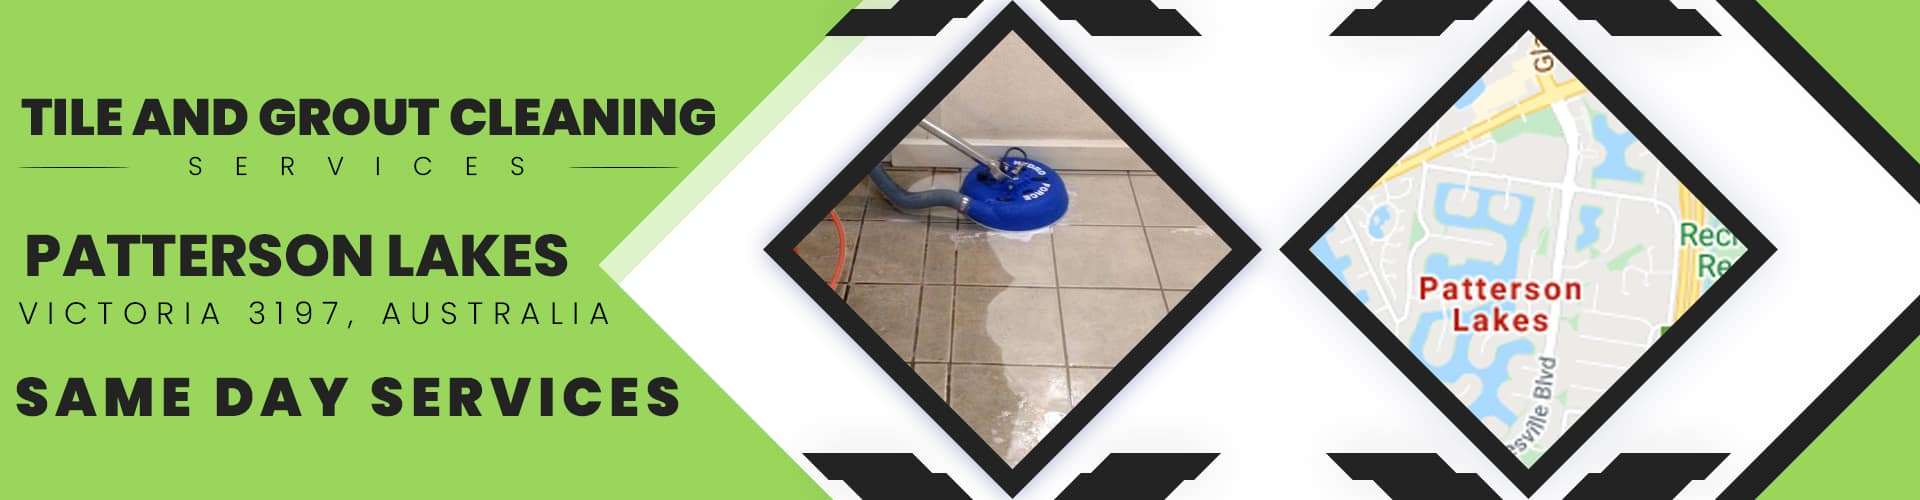 Tile And Grout Cleaning Patterson Lakes